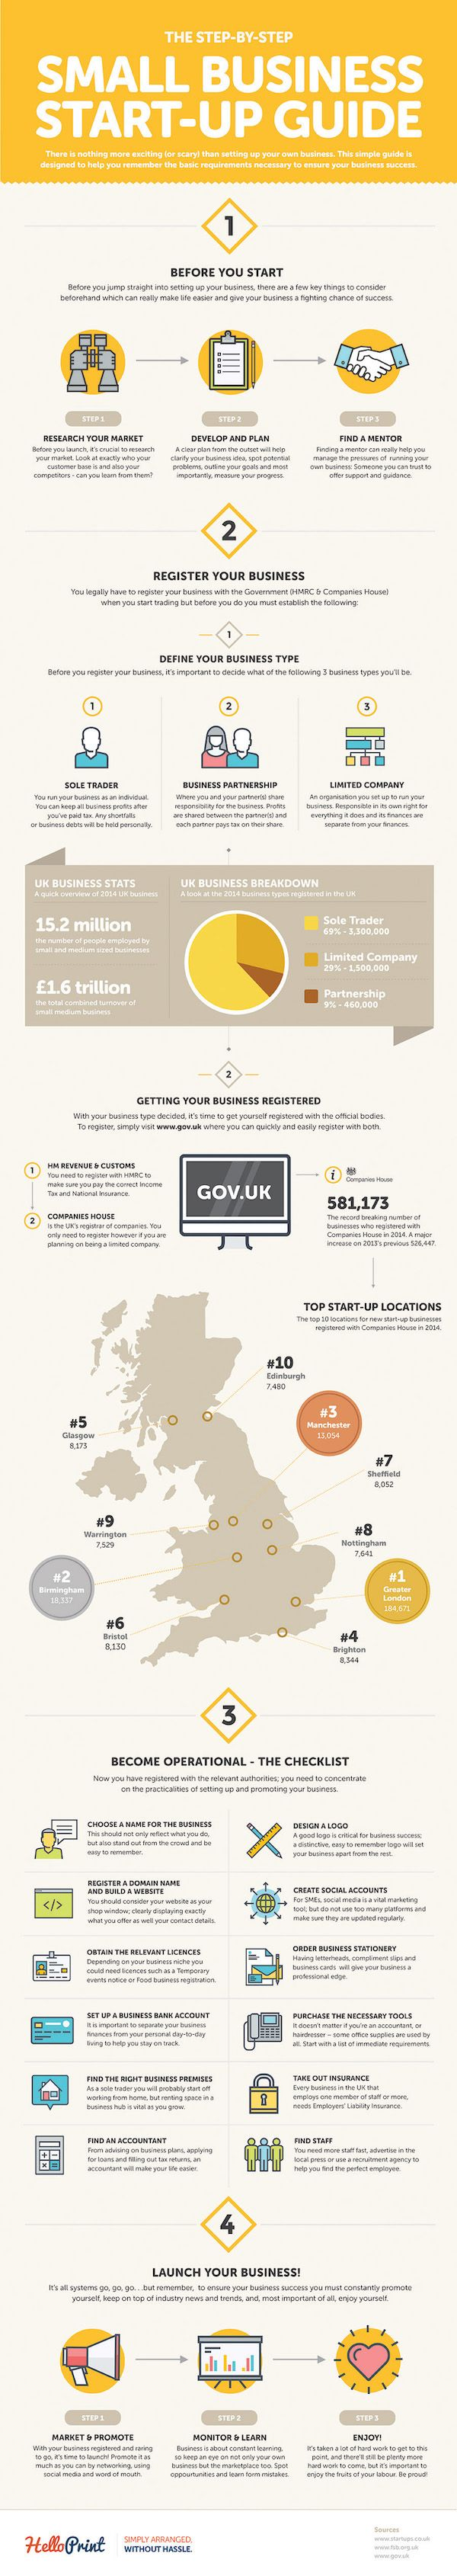 The Step-By-Step Small Business Start Up Guide - in the U.K., but ...